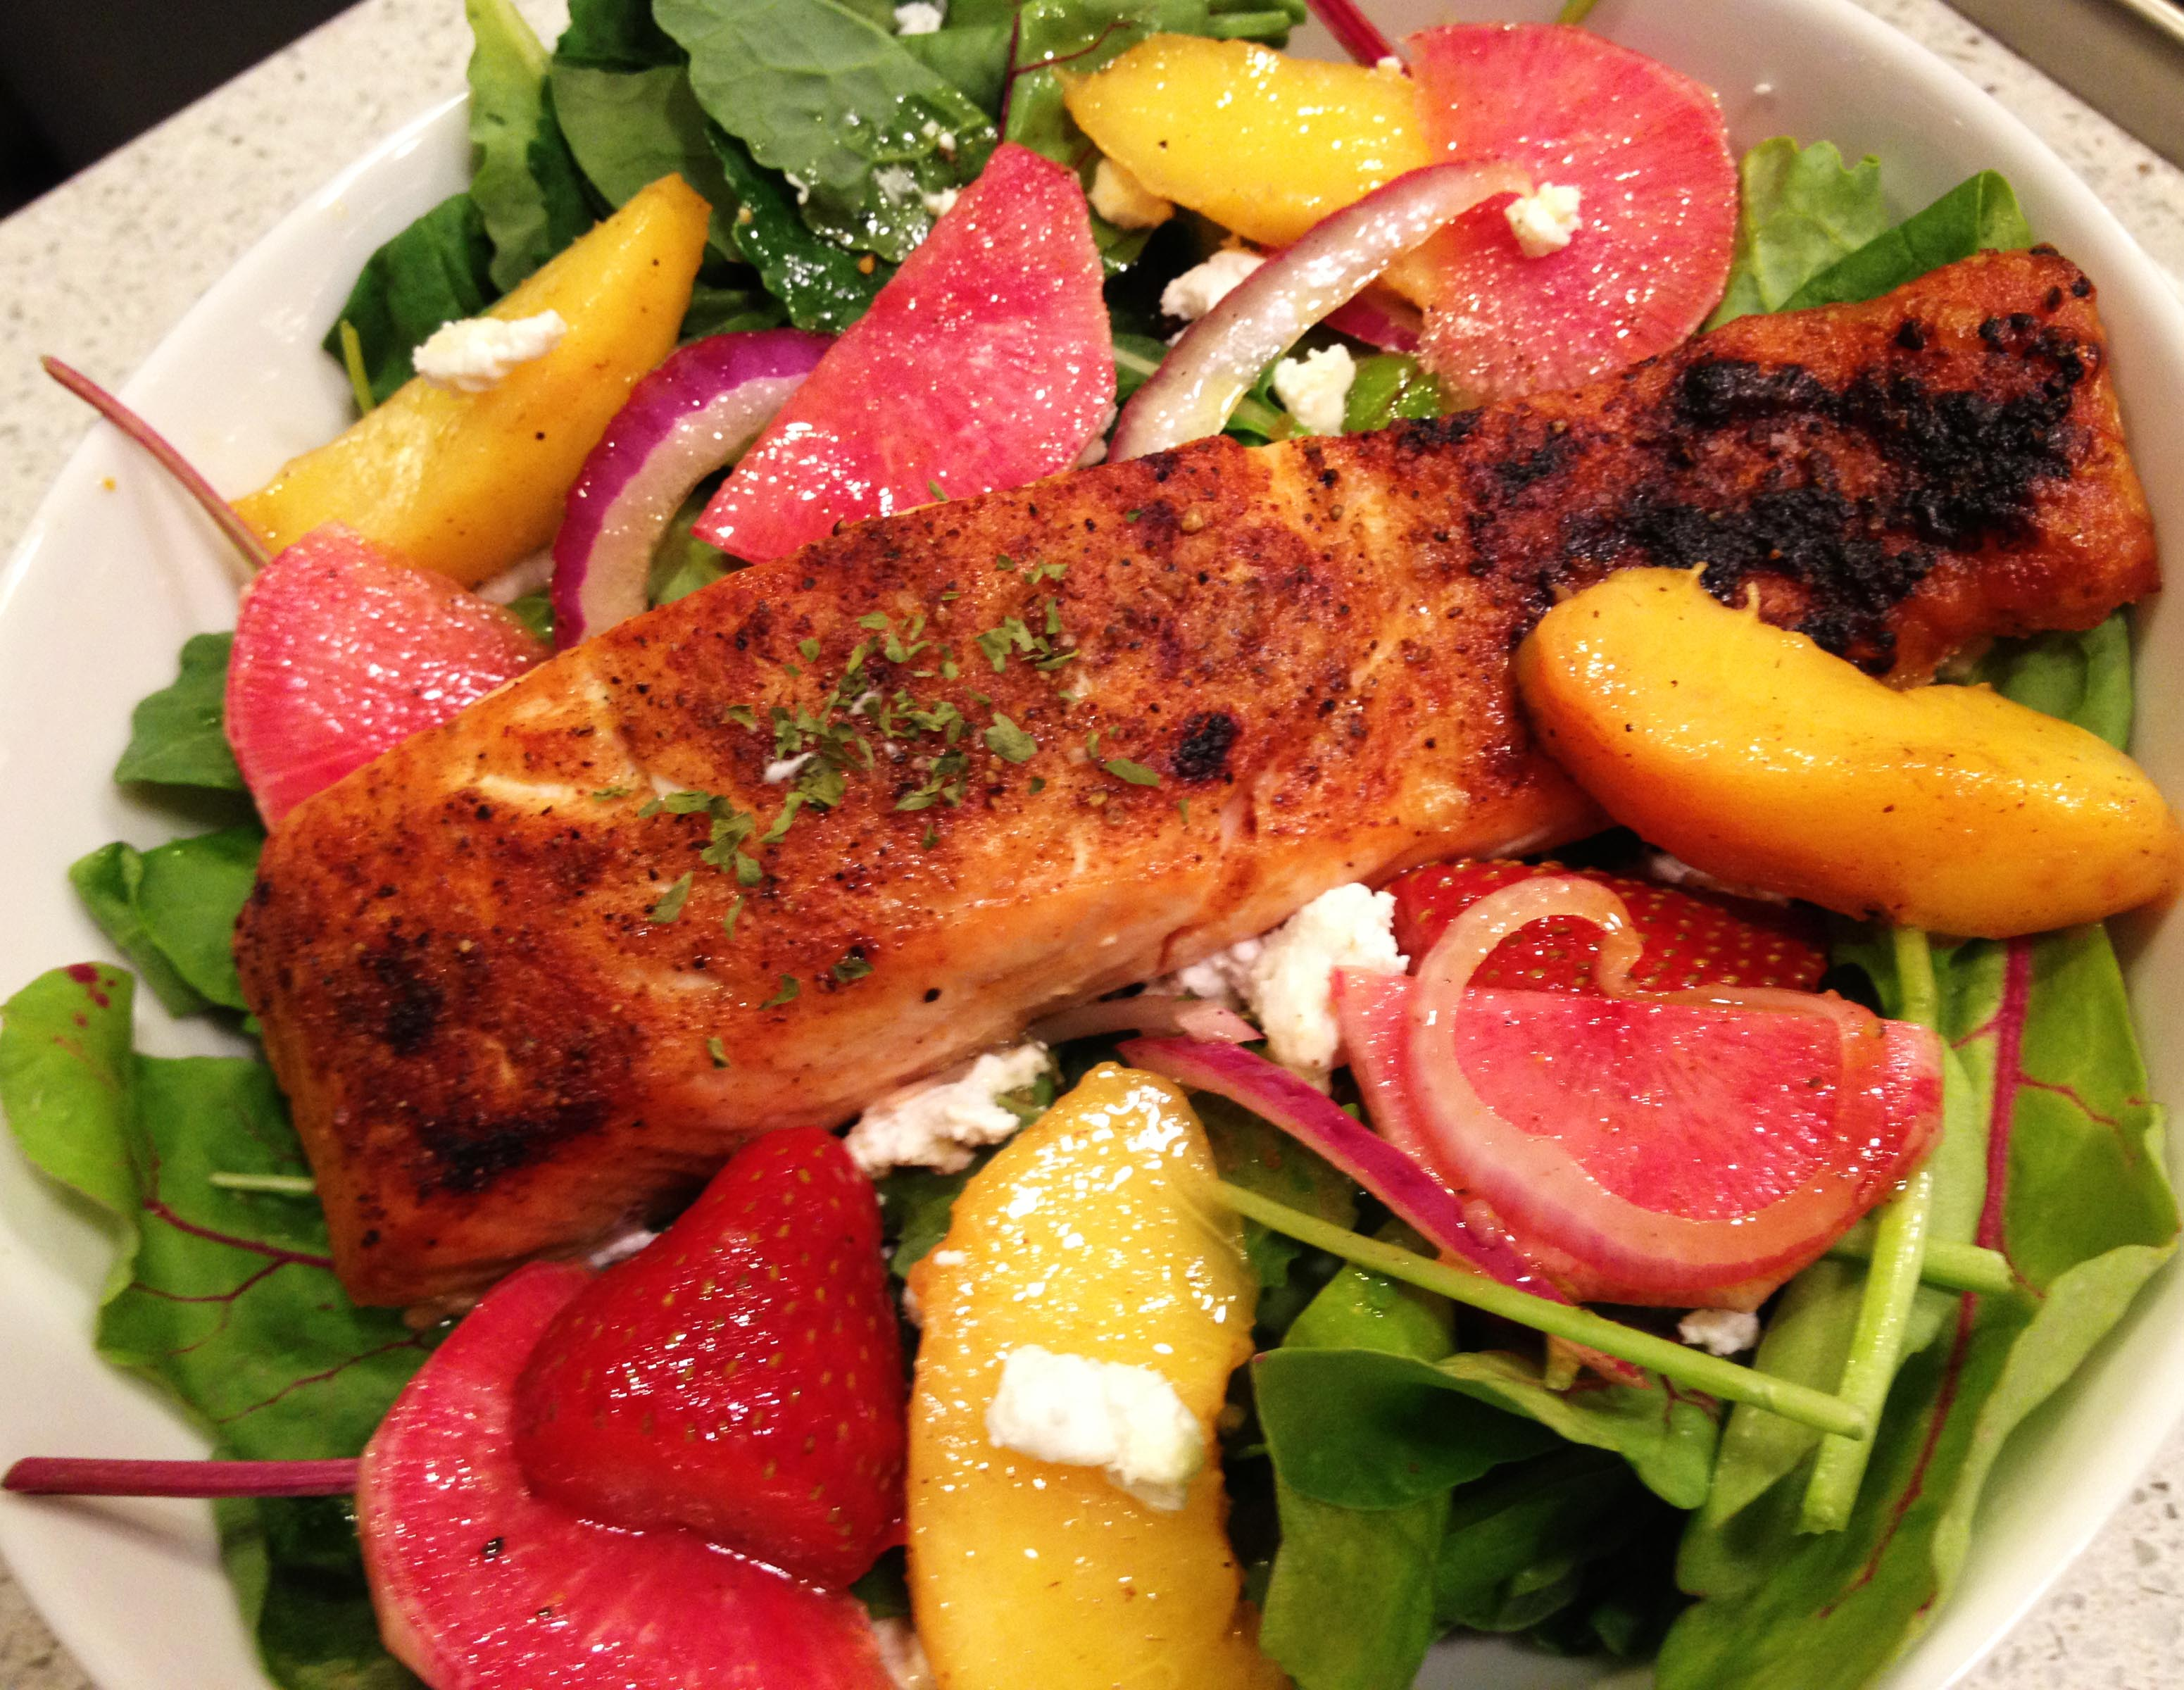 ... with Grilled Salmon, Watermelon Radish, Peaches and Strawberries